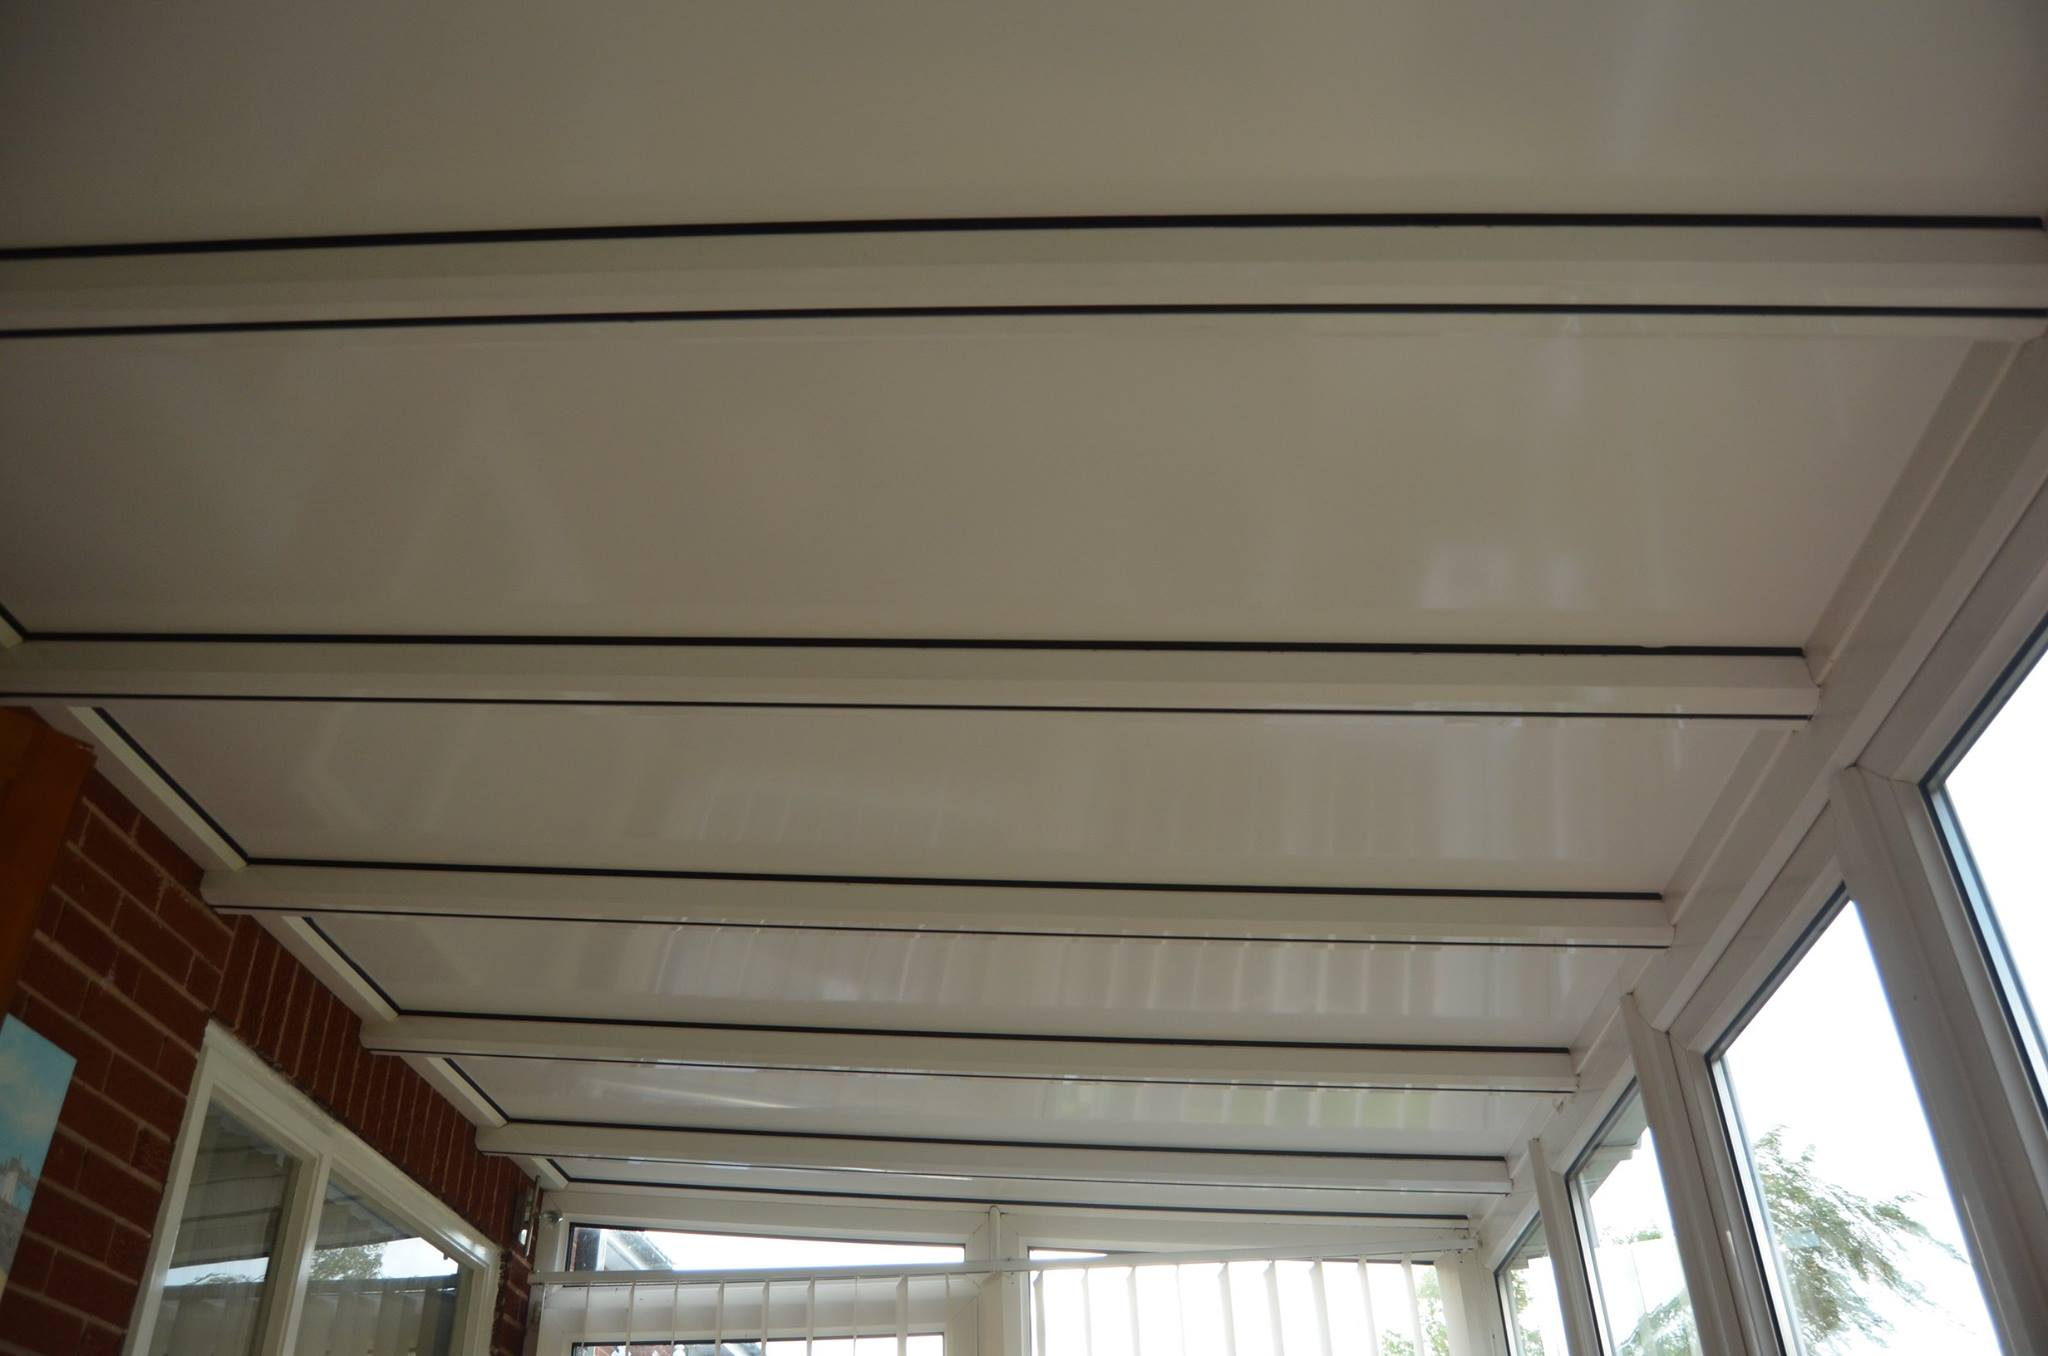 Cheshire new aluminium lean-to roof - Superior Conservatory Panels